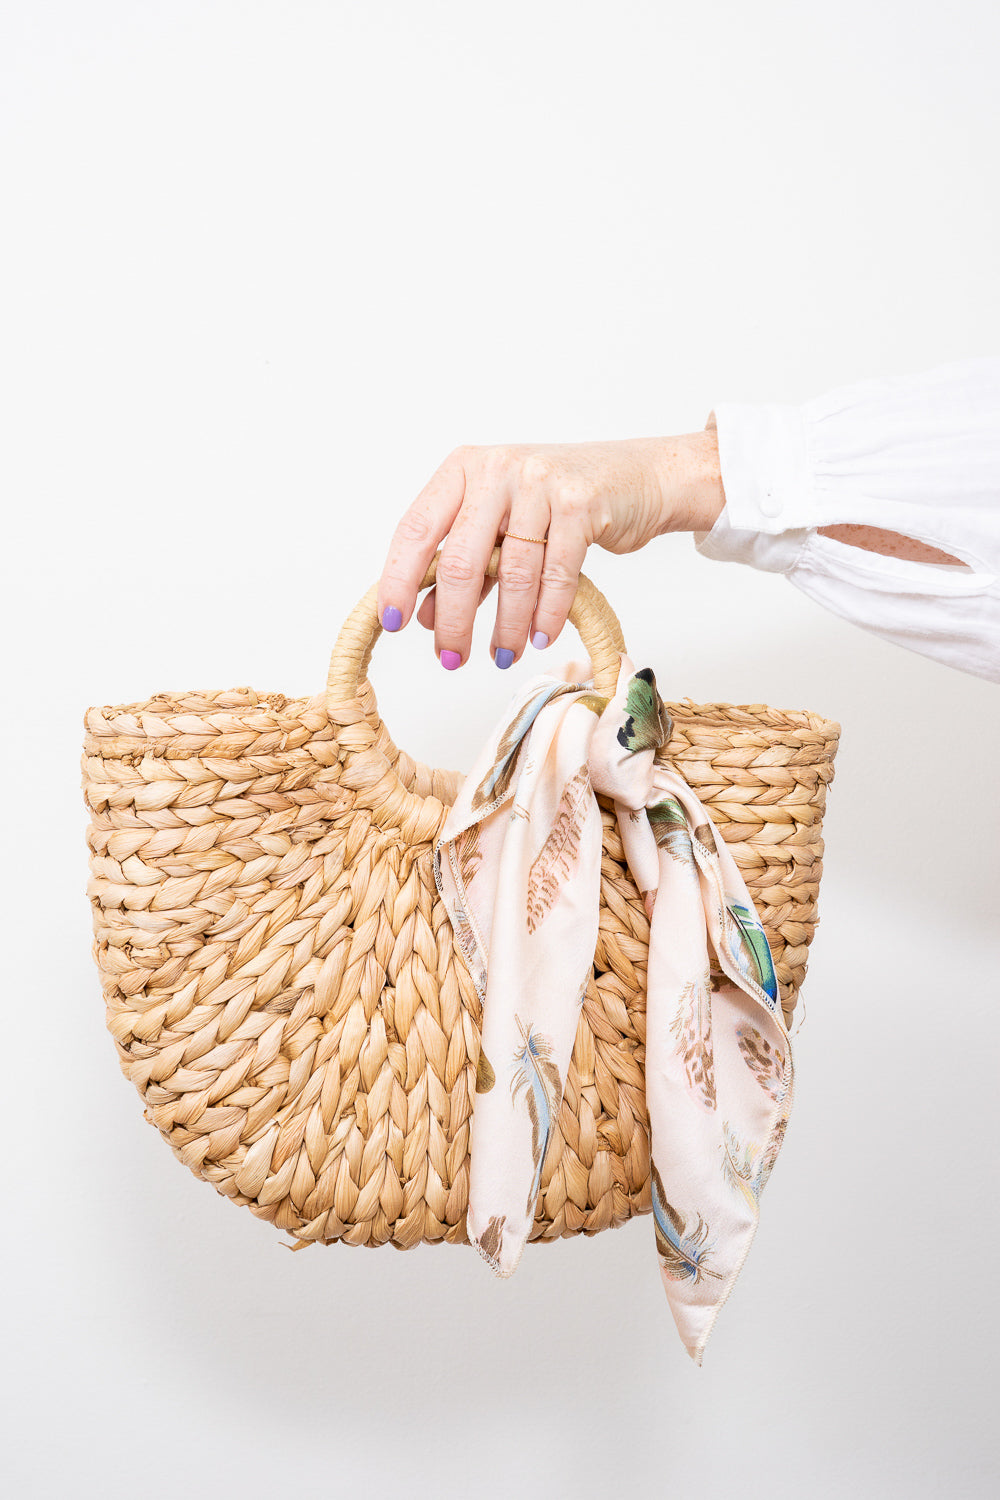 hands holding straw handbag with scarf tied on handle janna conner